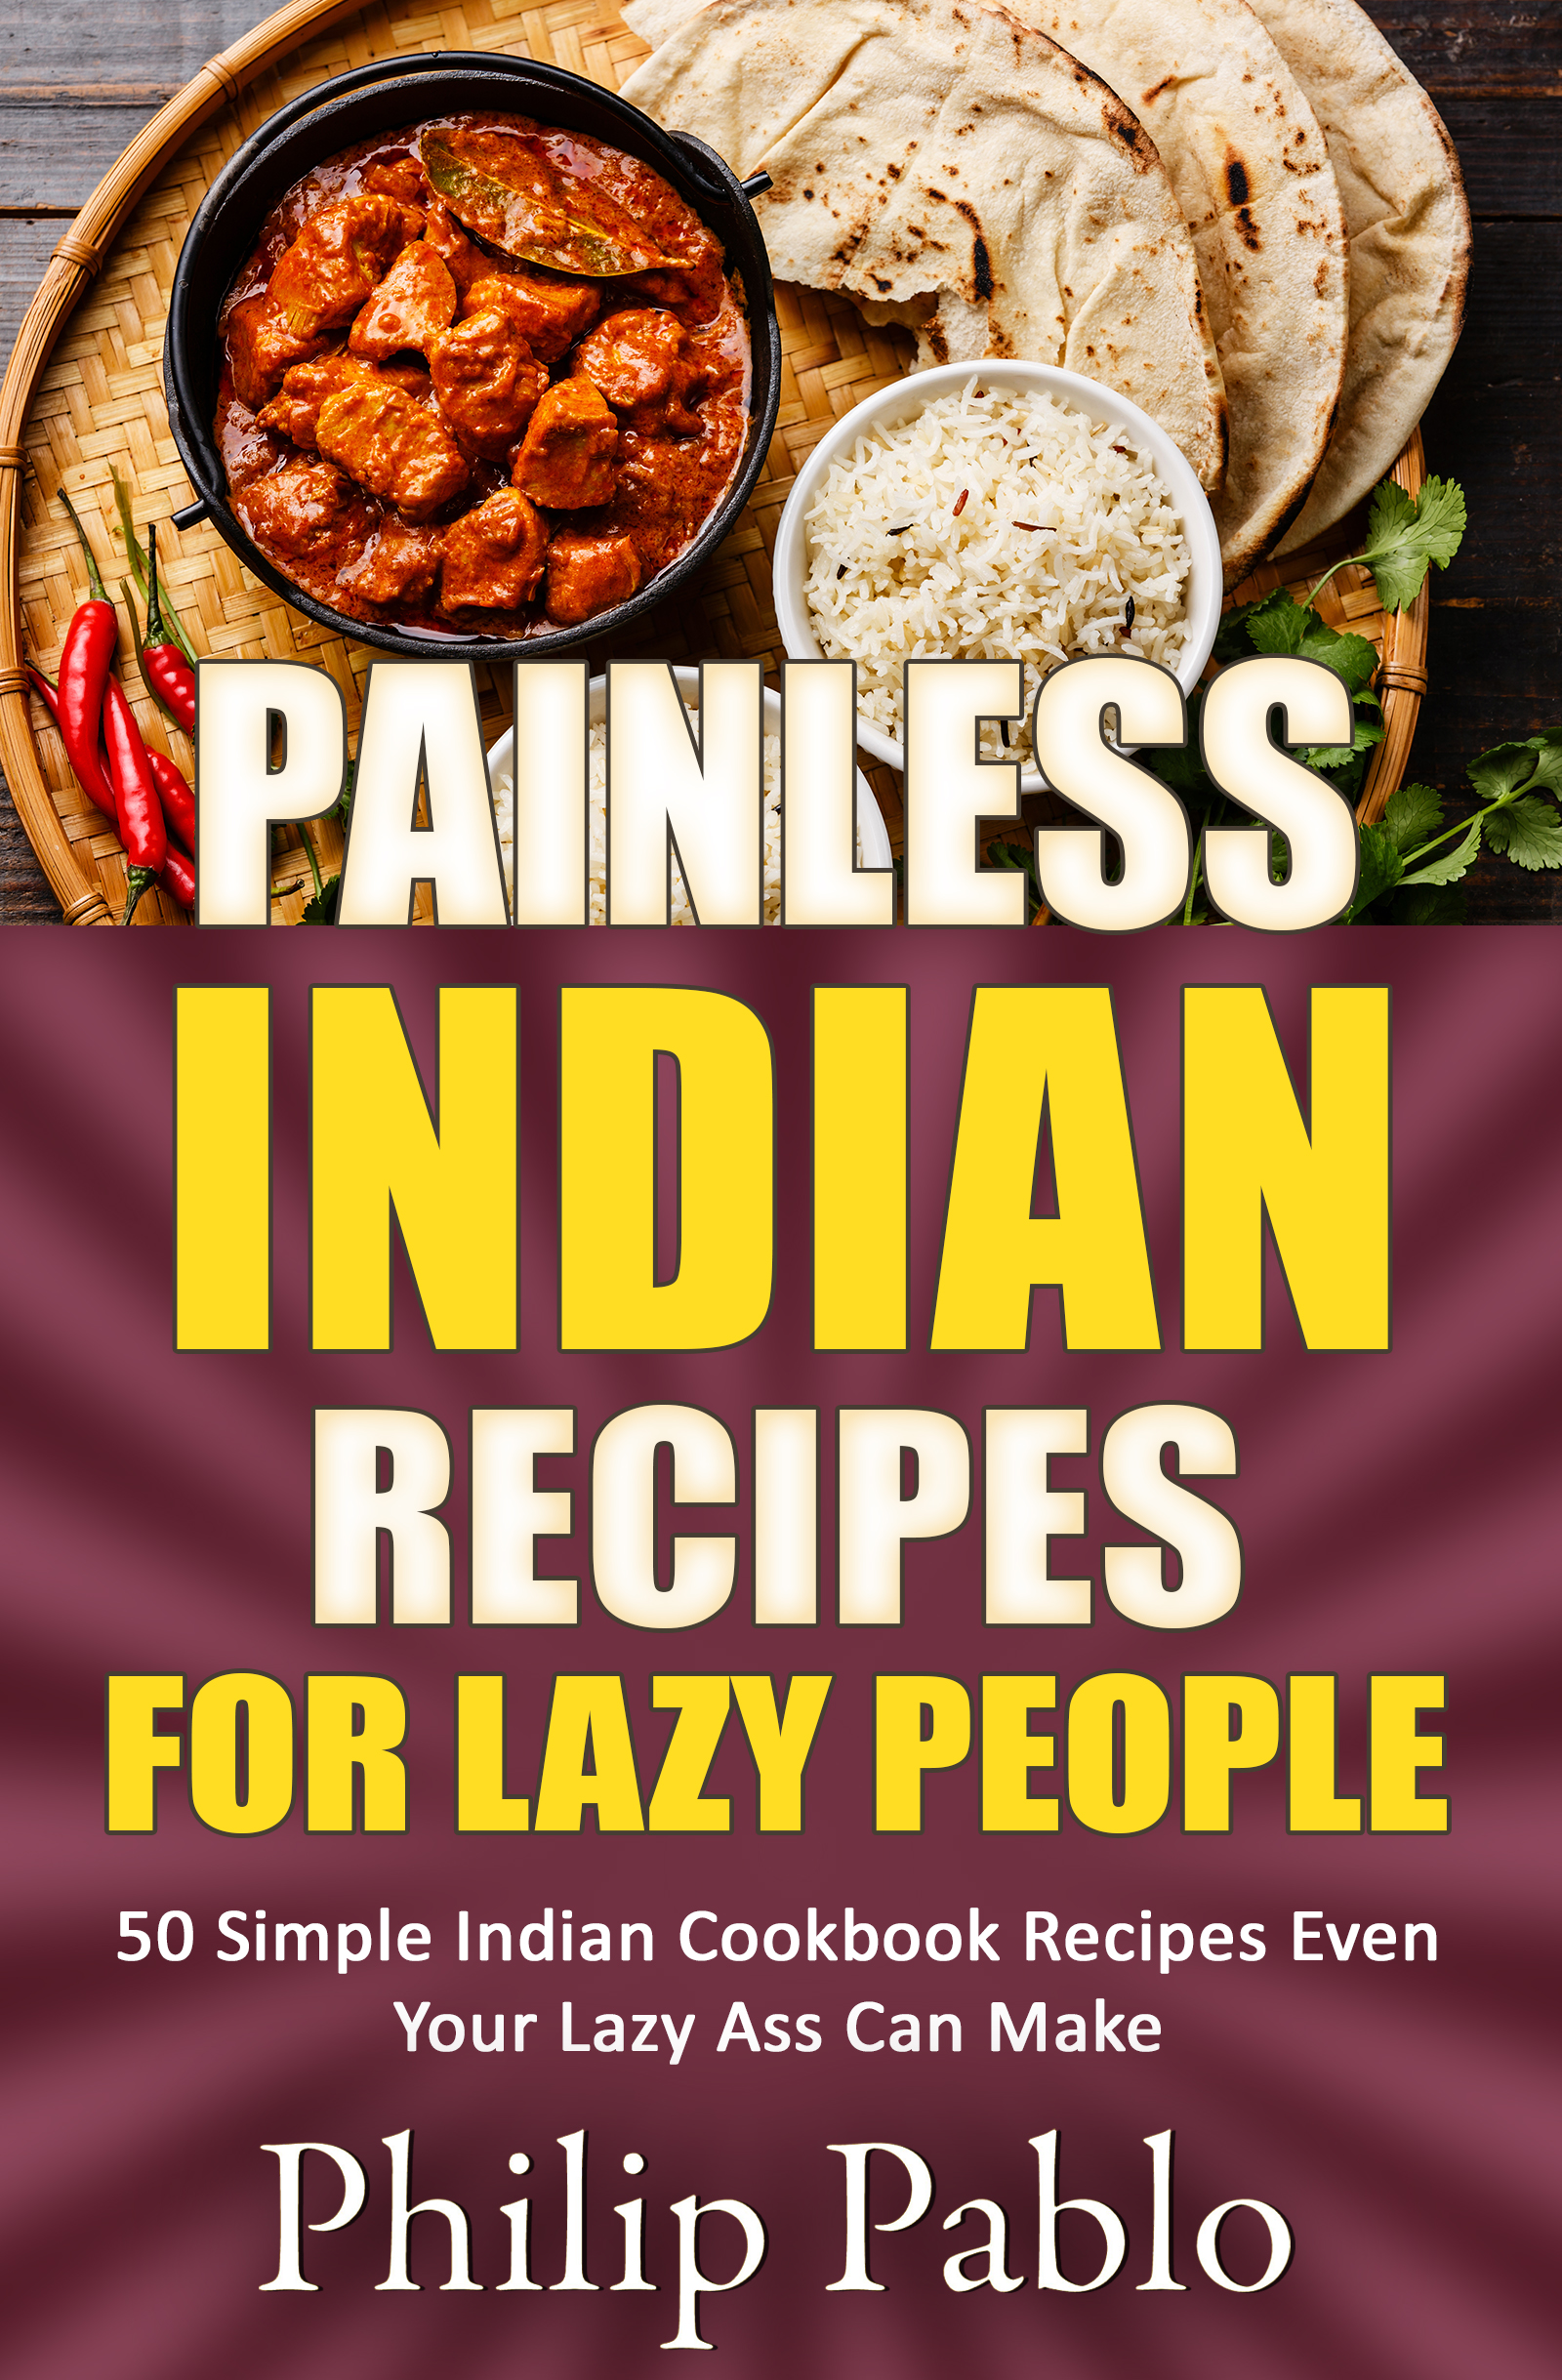 Smashwords painless indian recipes for lazy people 50 simple painless indian recipes for lazy people 50 simple indian cookbook recipes even your lazy ass can make forumfinder Image collections